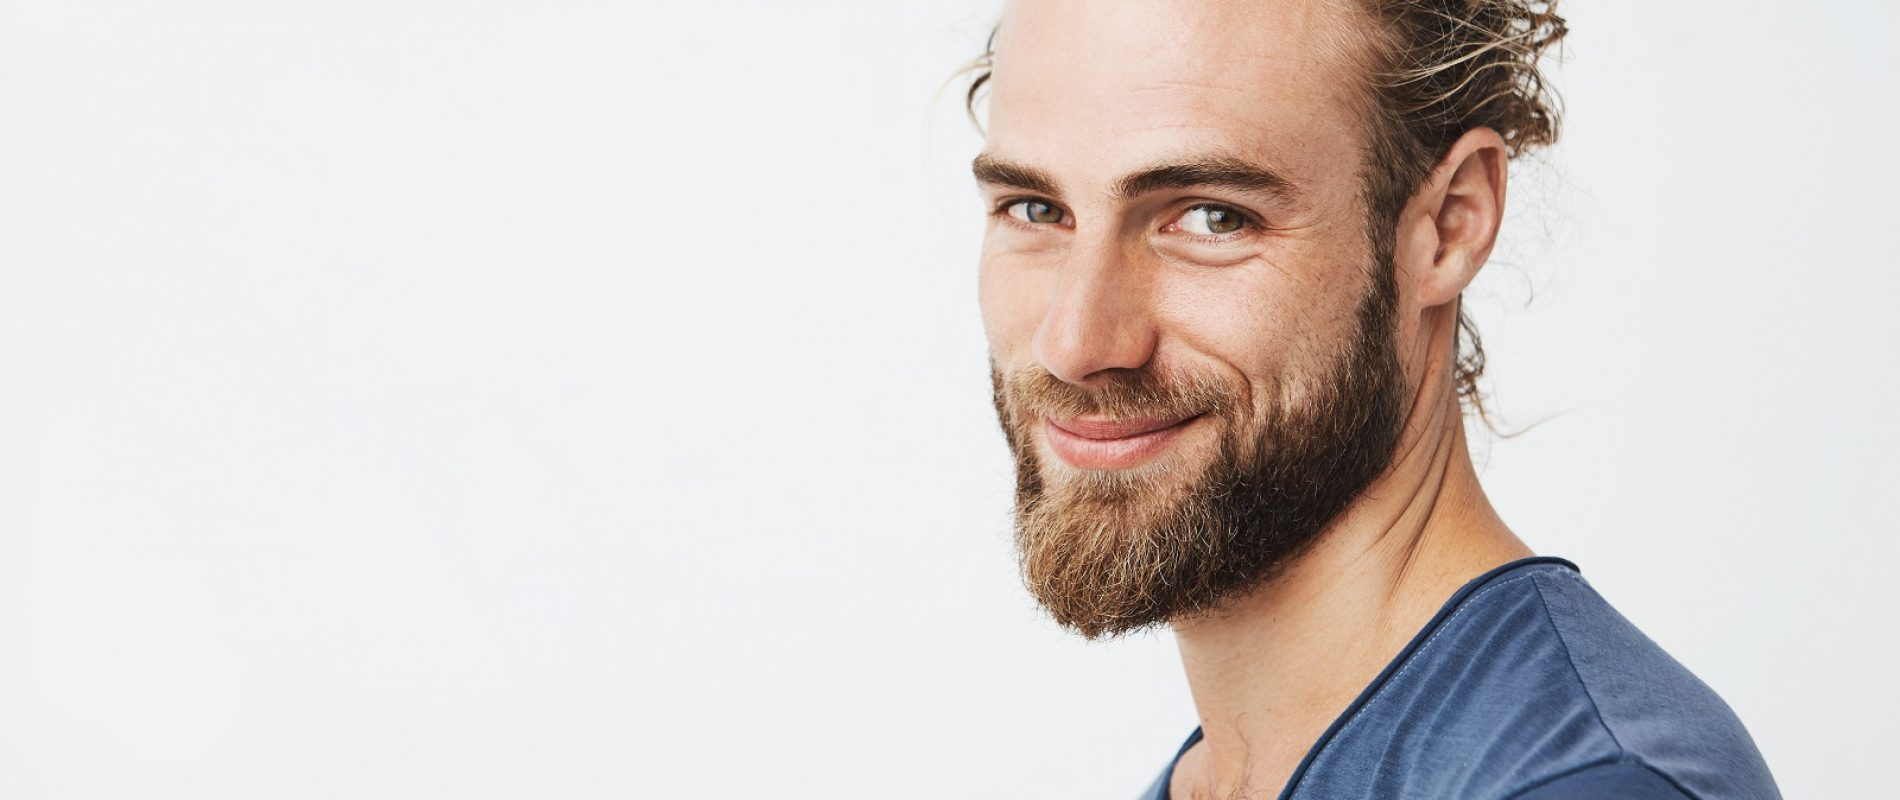 Close up portrait of handsome manly guy with beard posing in three quarters, looking in camera and happily smiling. Lifestyle concept